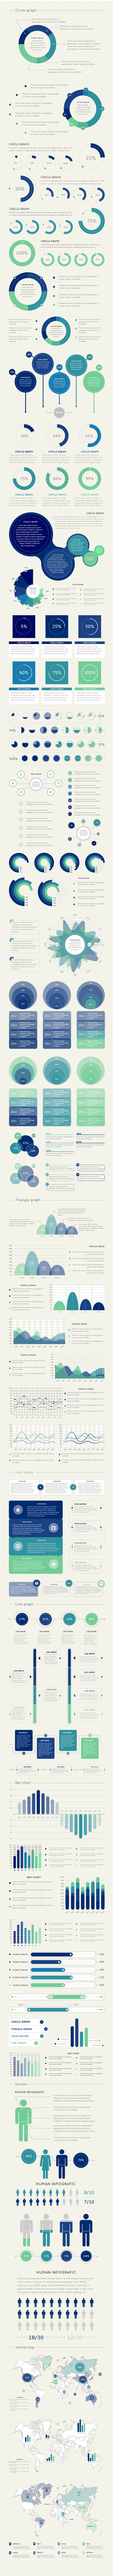 Infographic Elements Template is a vector pack which contains various types of elements such as graphs, icons, diagrams, etc. Buy it to create your own infographics, presentations, reports or advertisement.